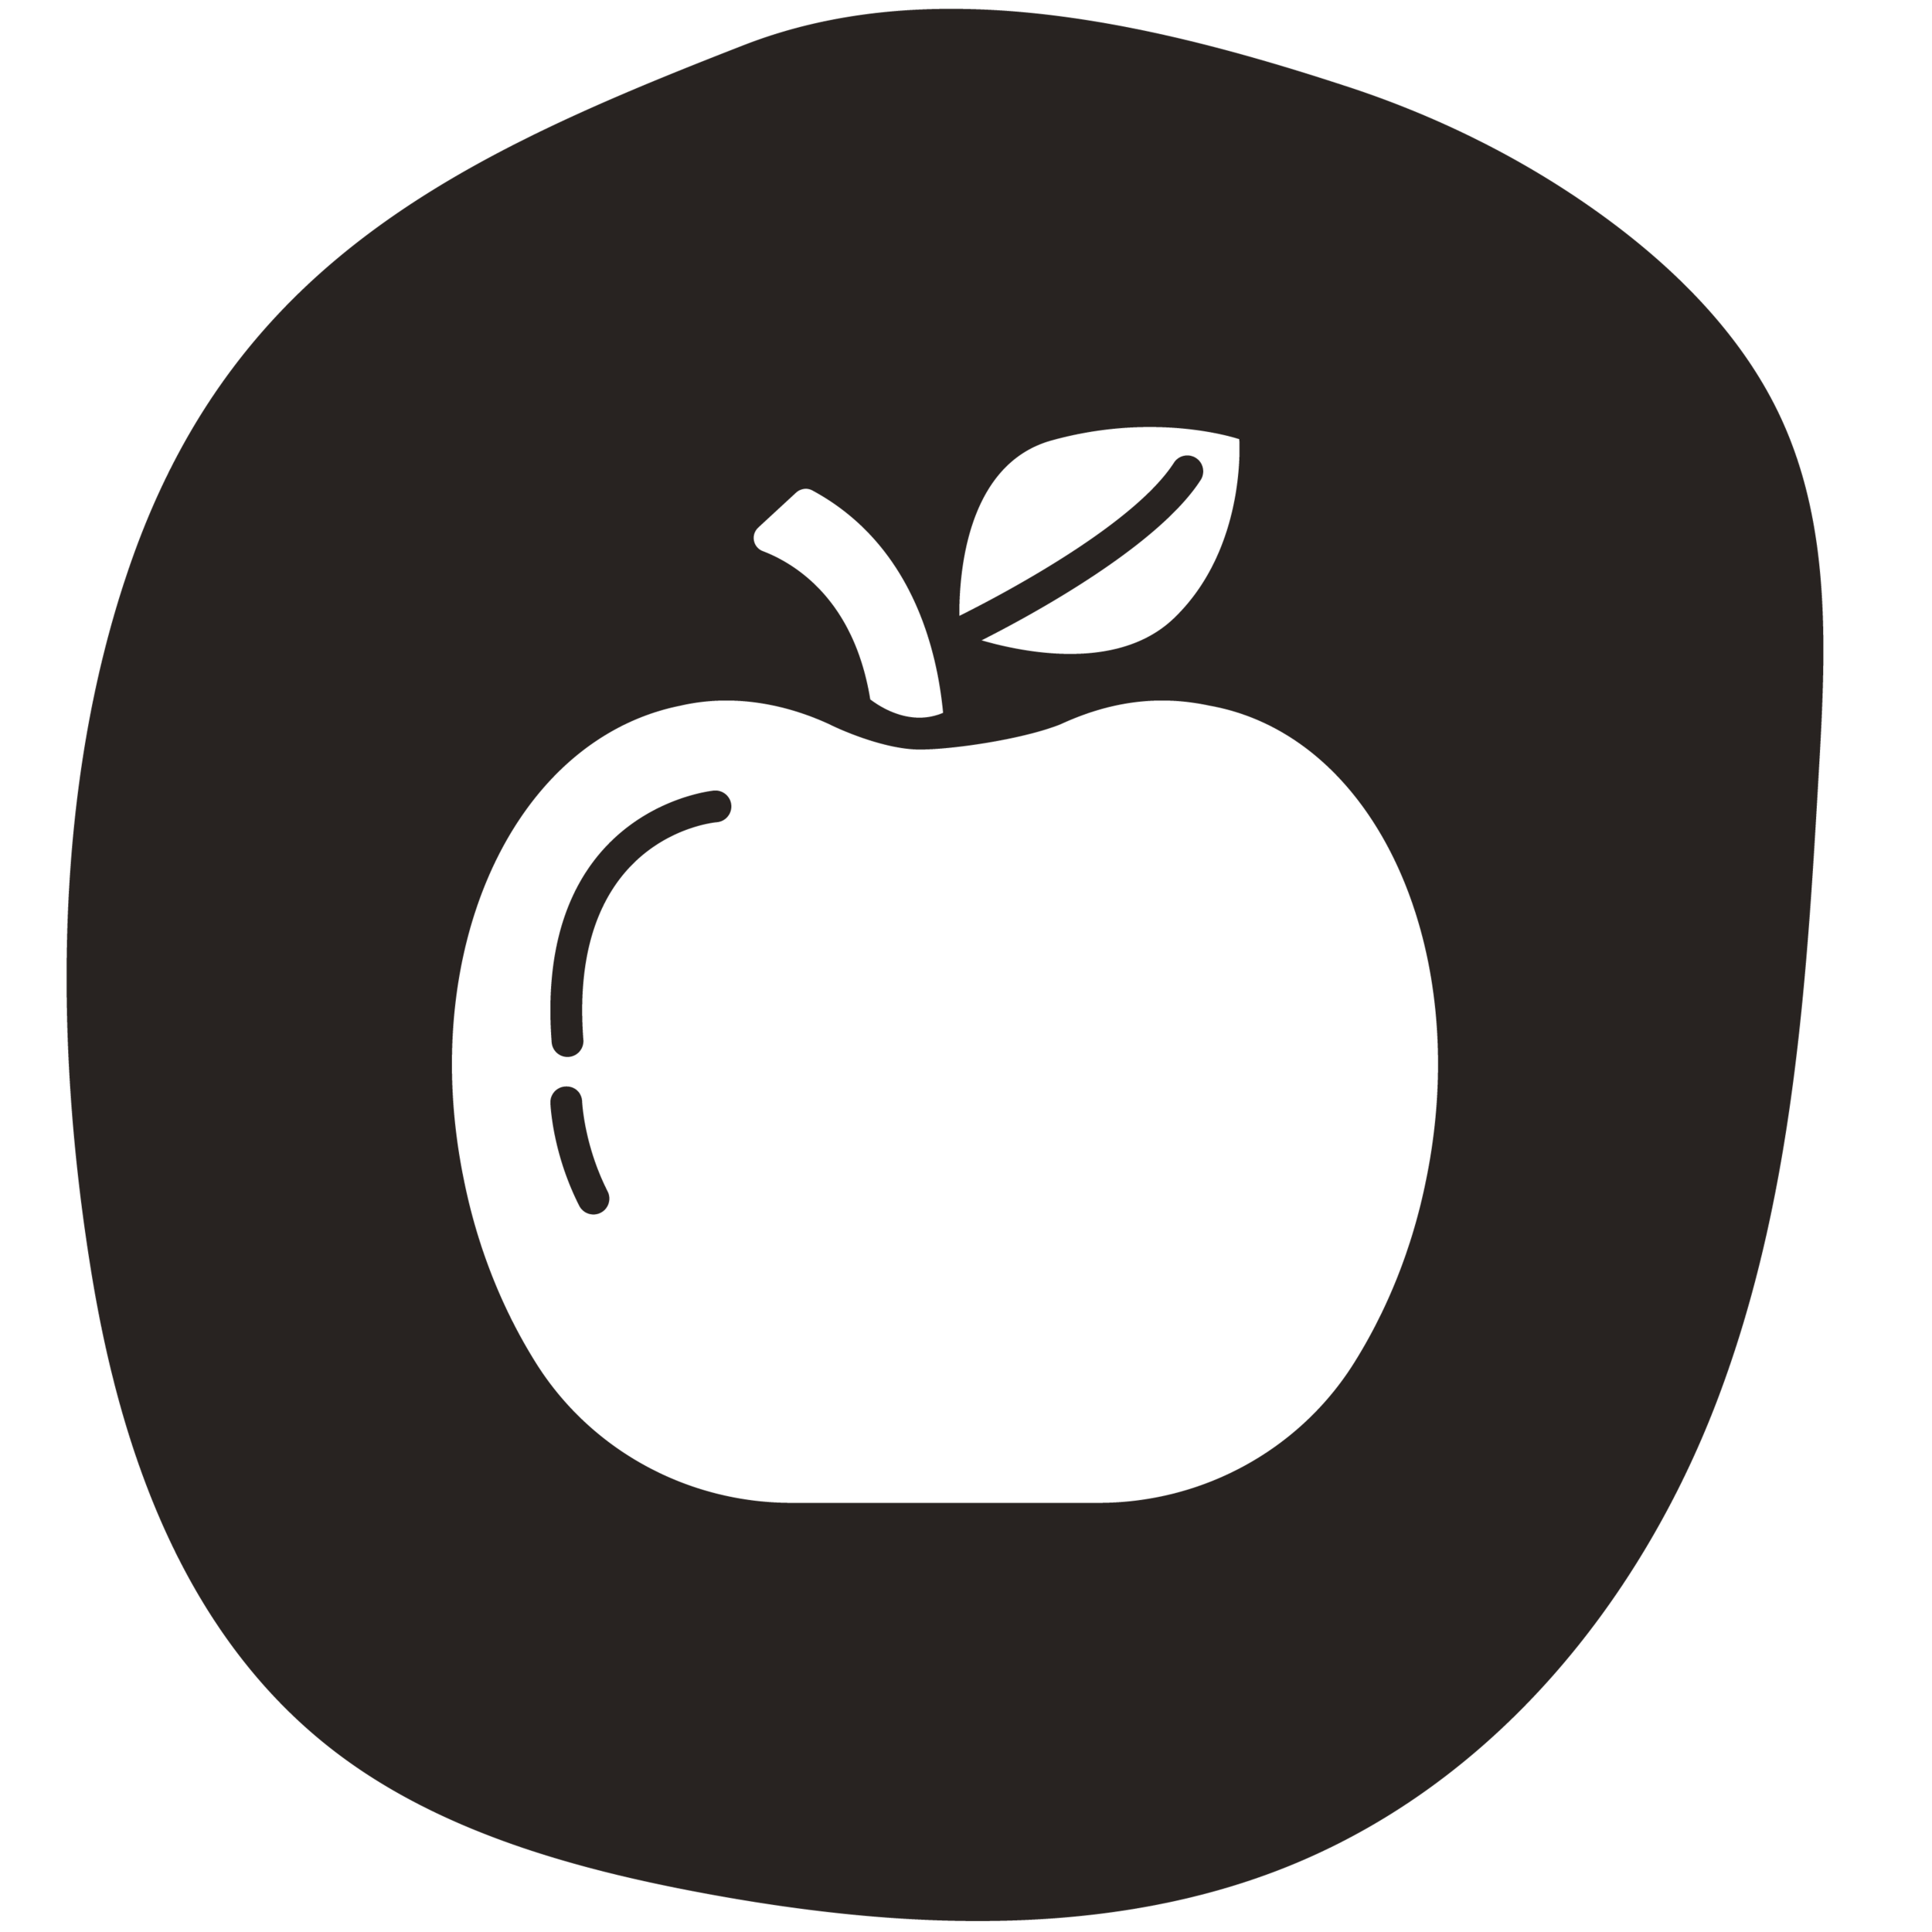 Icon-10.png